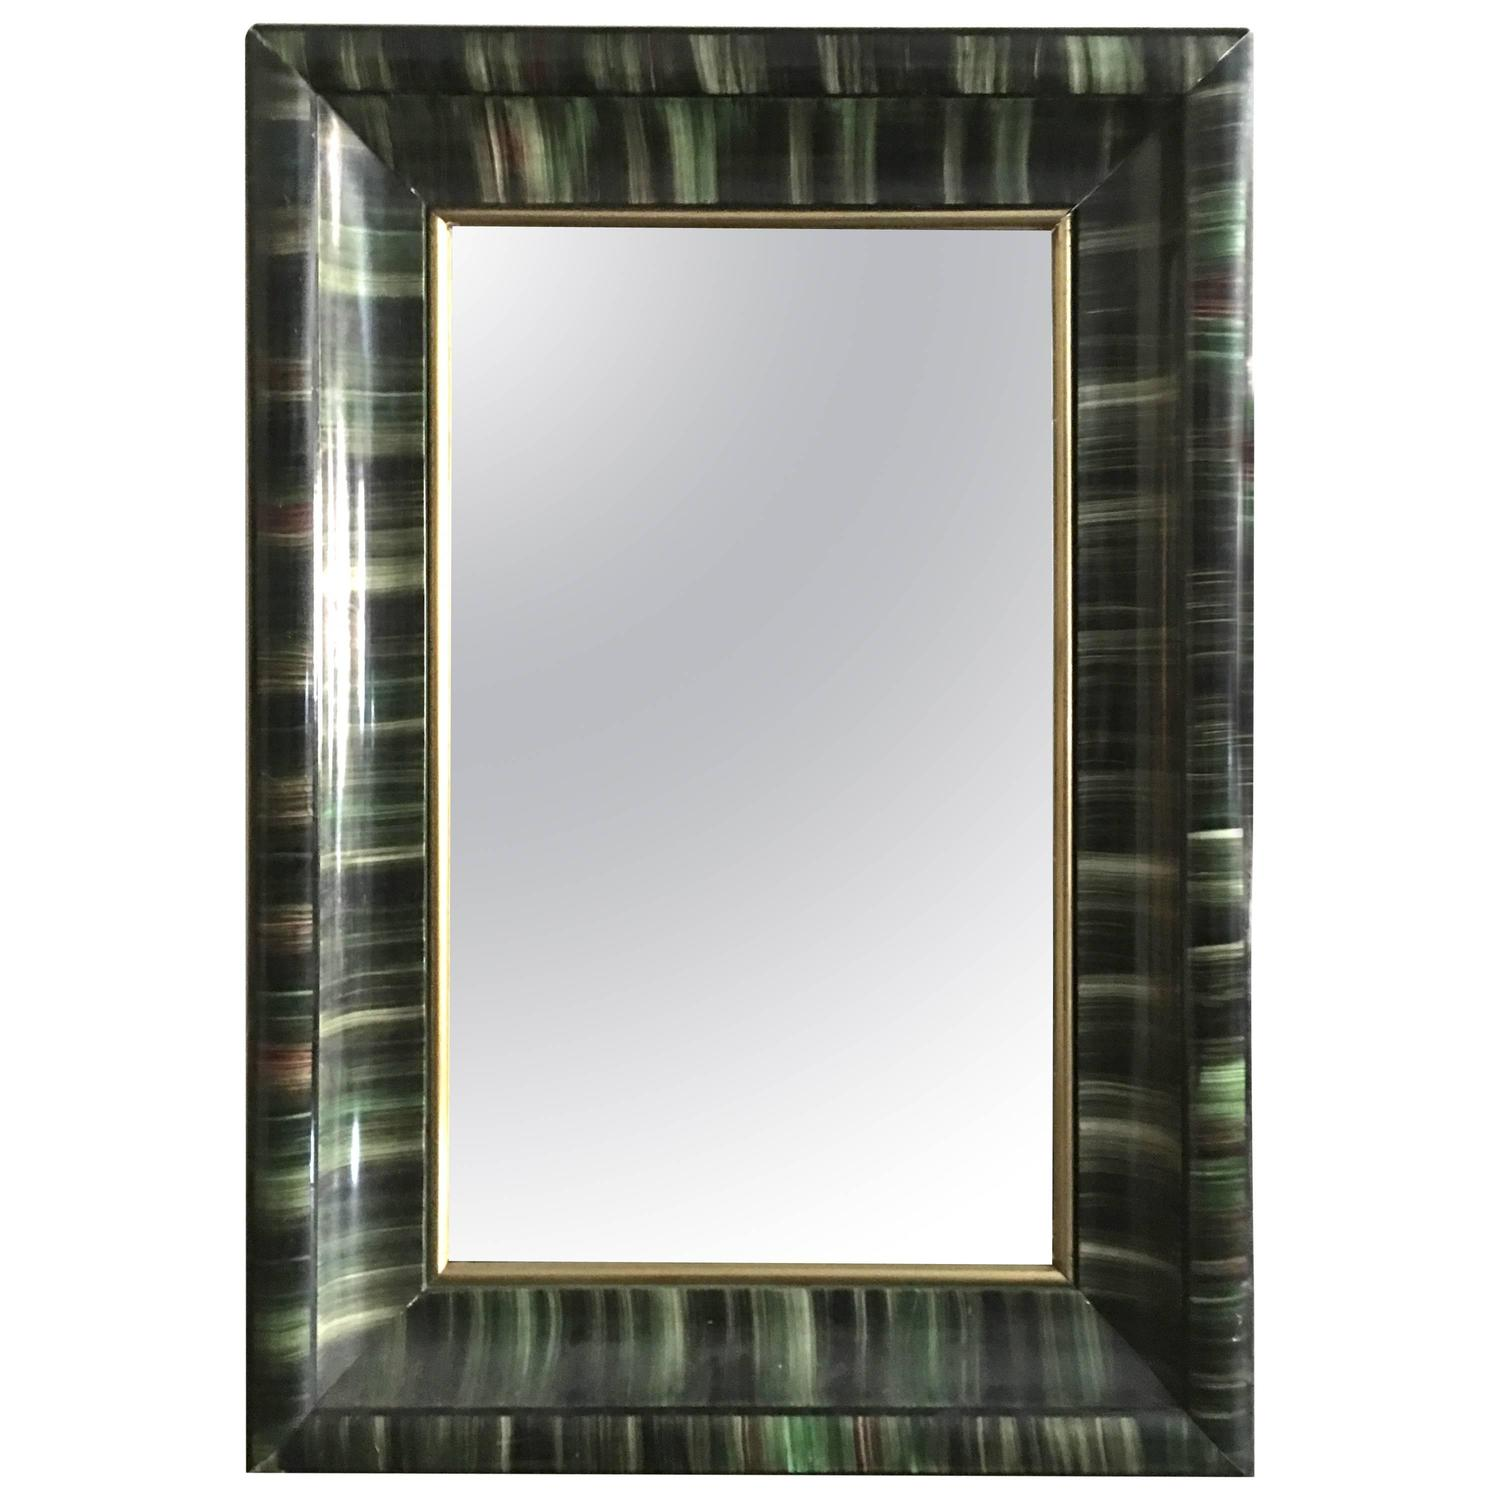 unusual 19th century american green painted framed mirror unusual mussel shell mirror for sale at 1stdibs